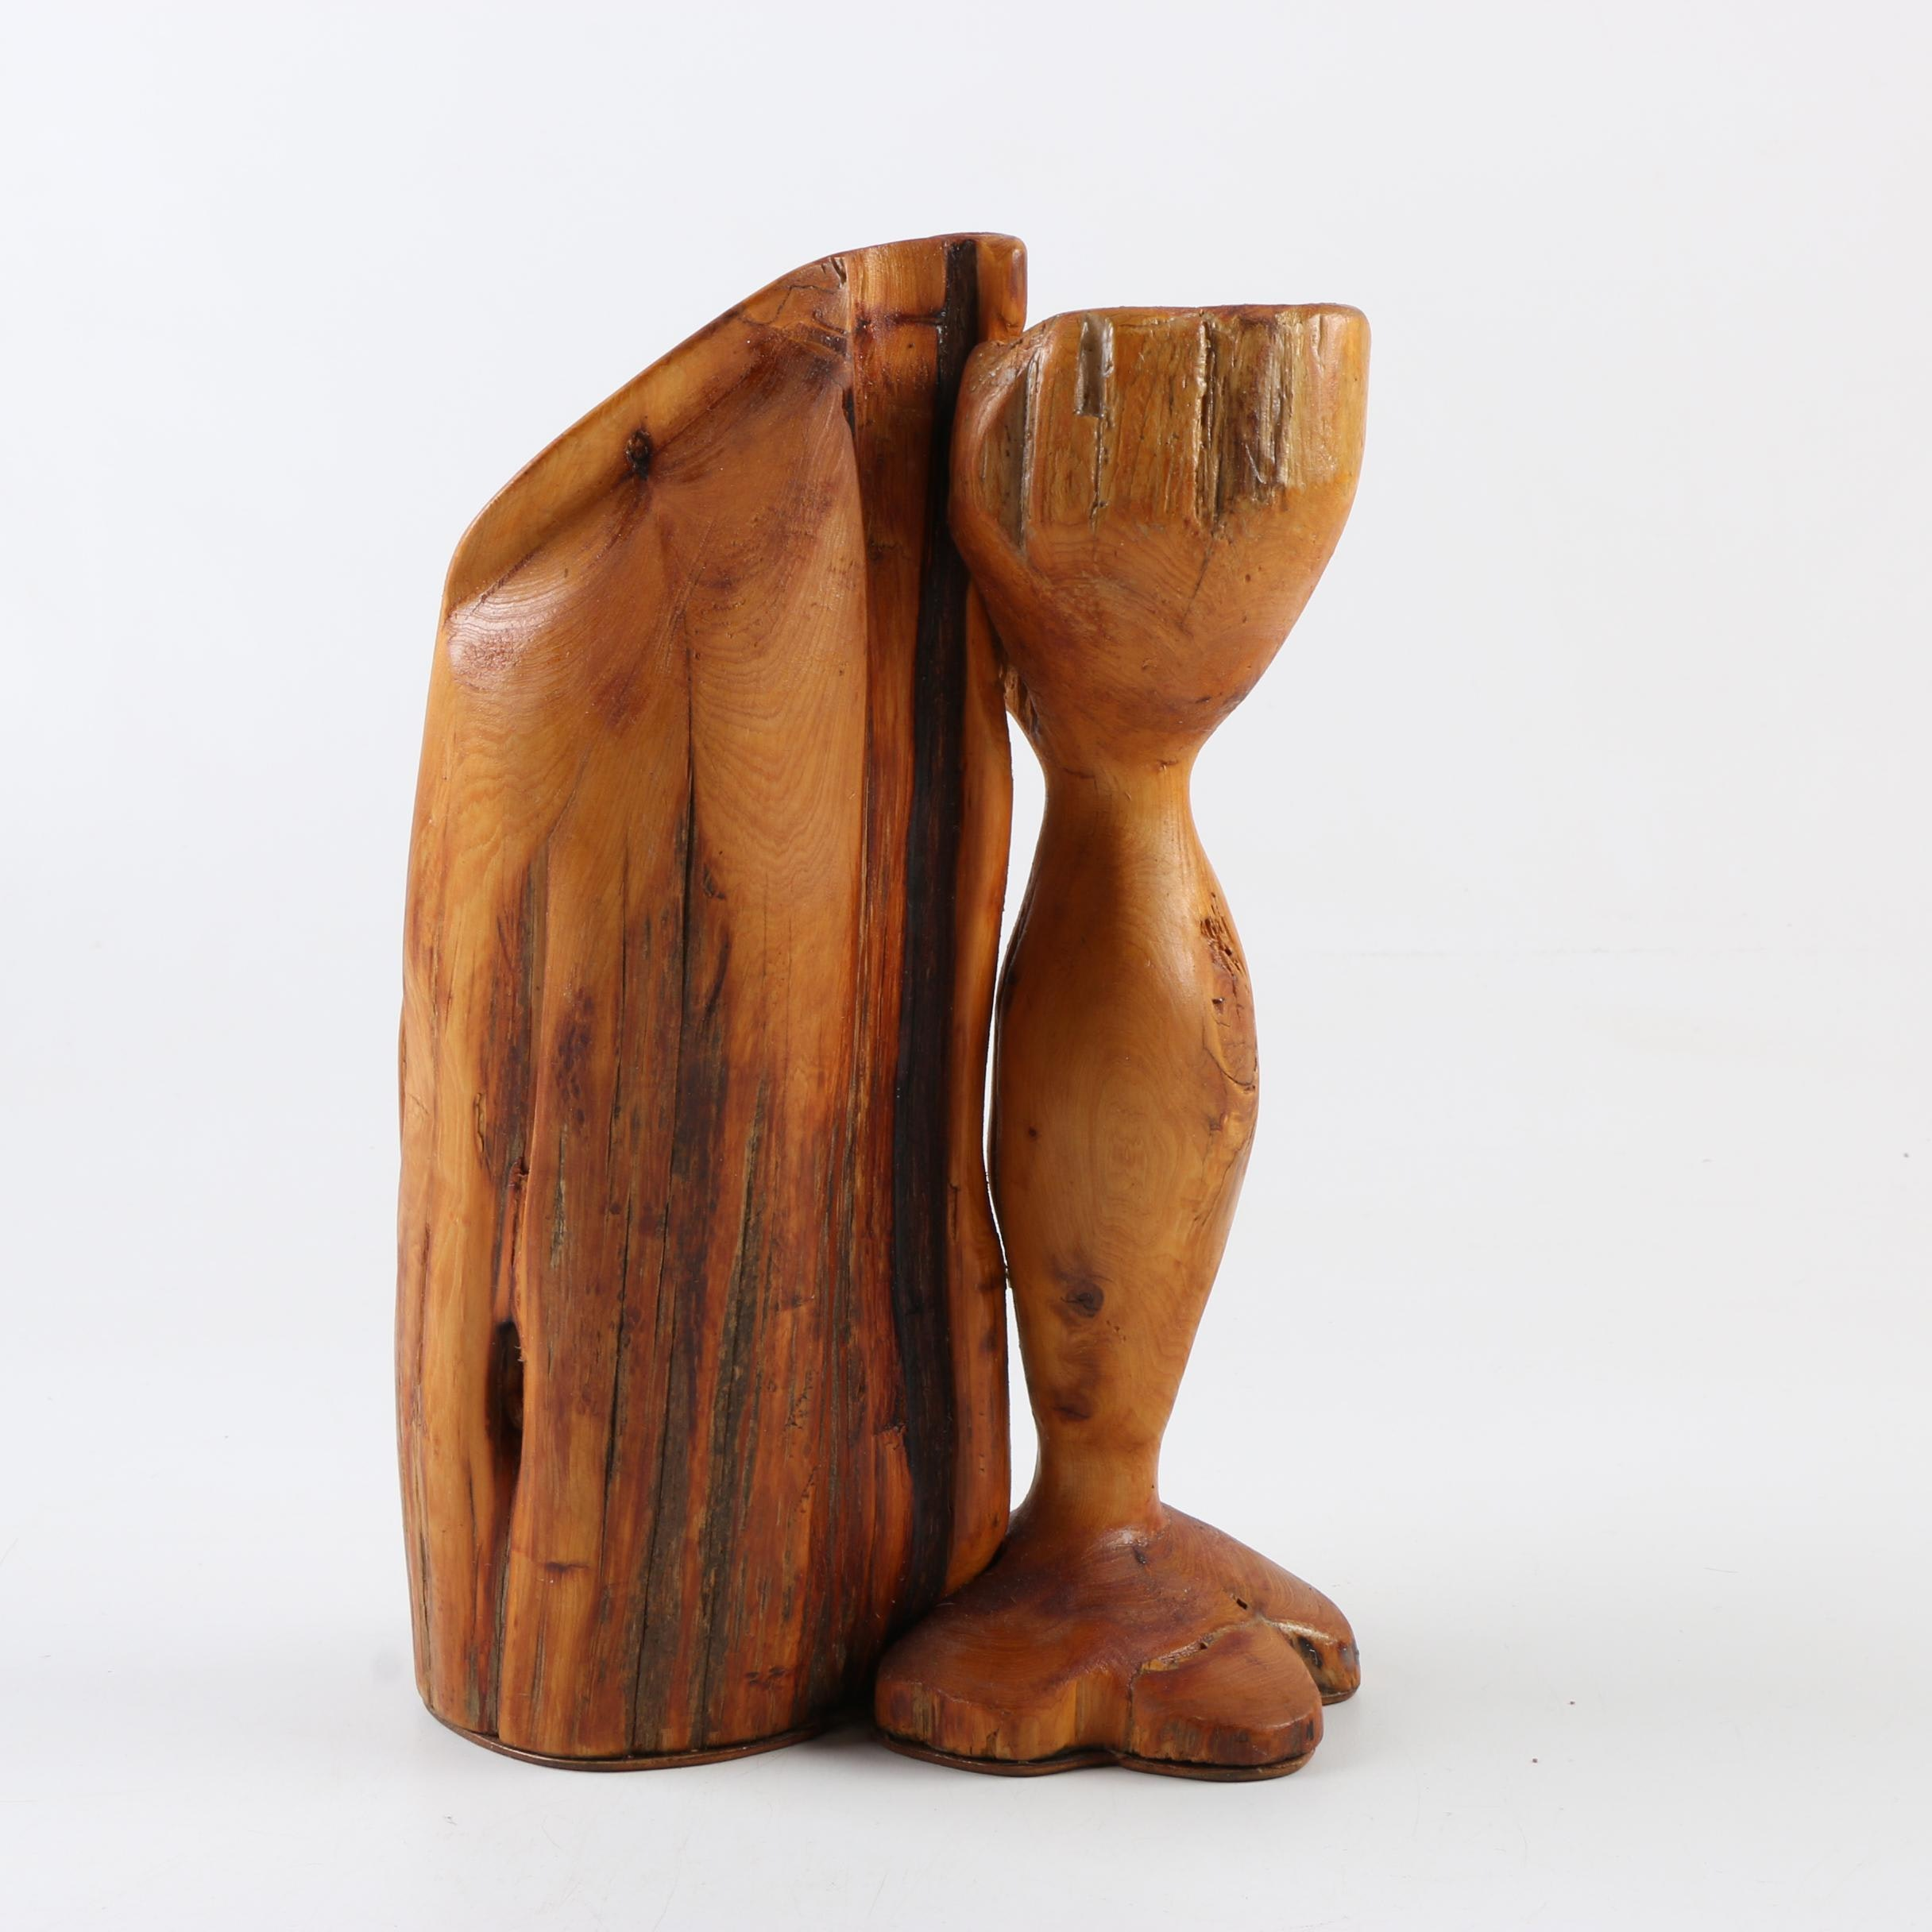 Carved Wooden Contemporary Sculpture